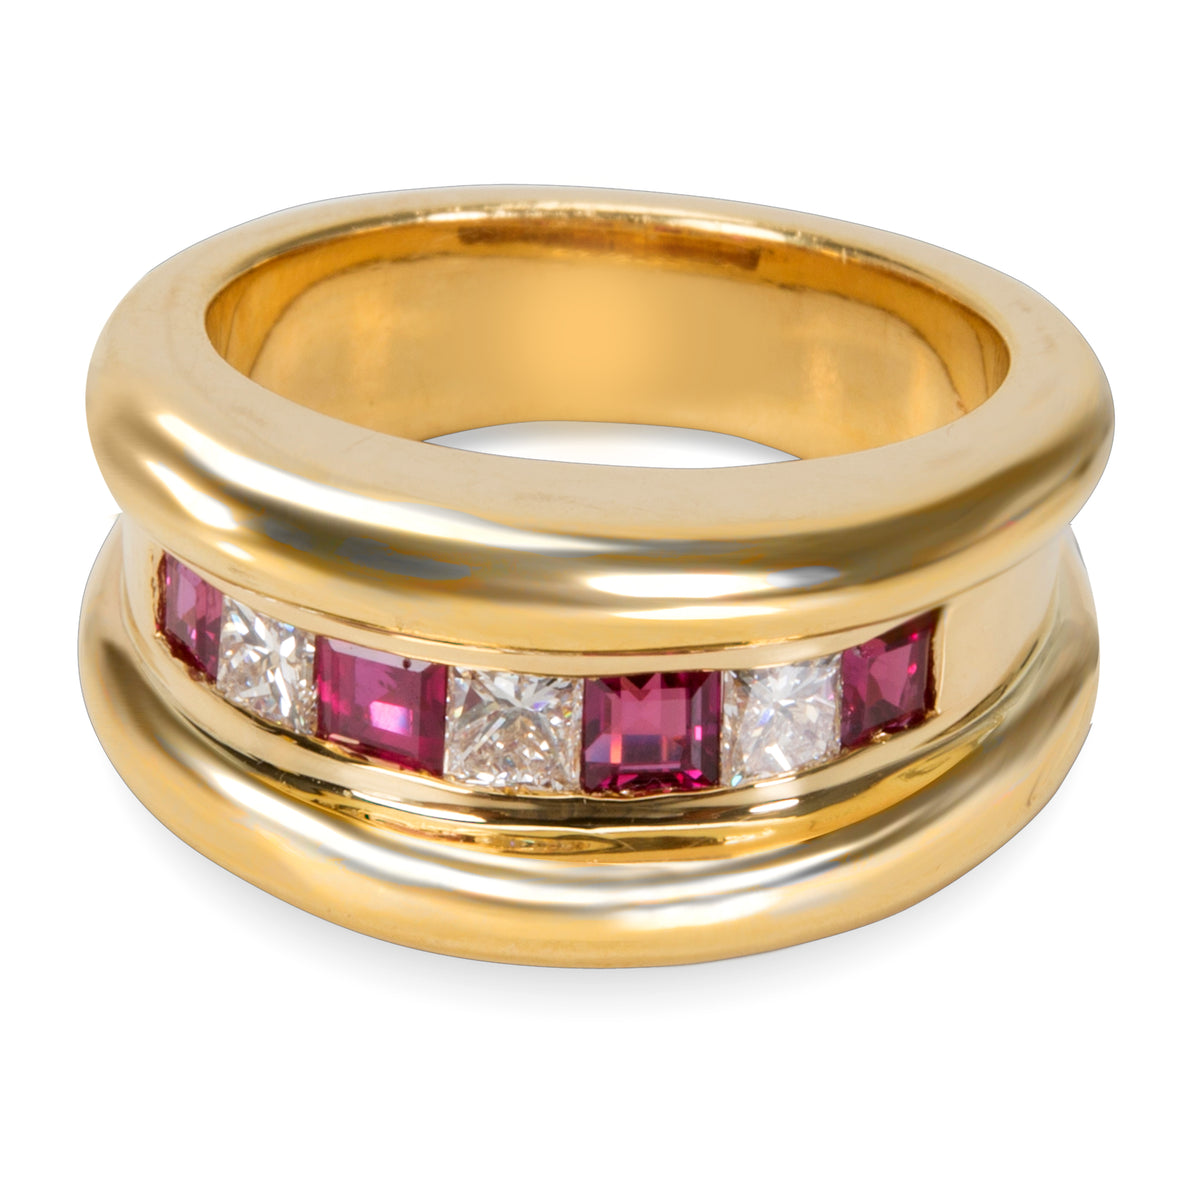 Channel Set Diamond & Ruby Band in 18KT Yellow Gold 1.27 ctw